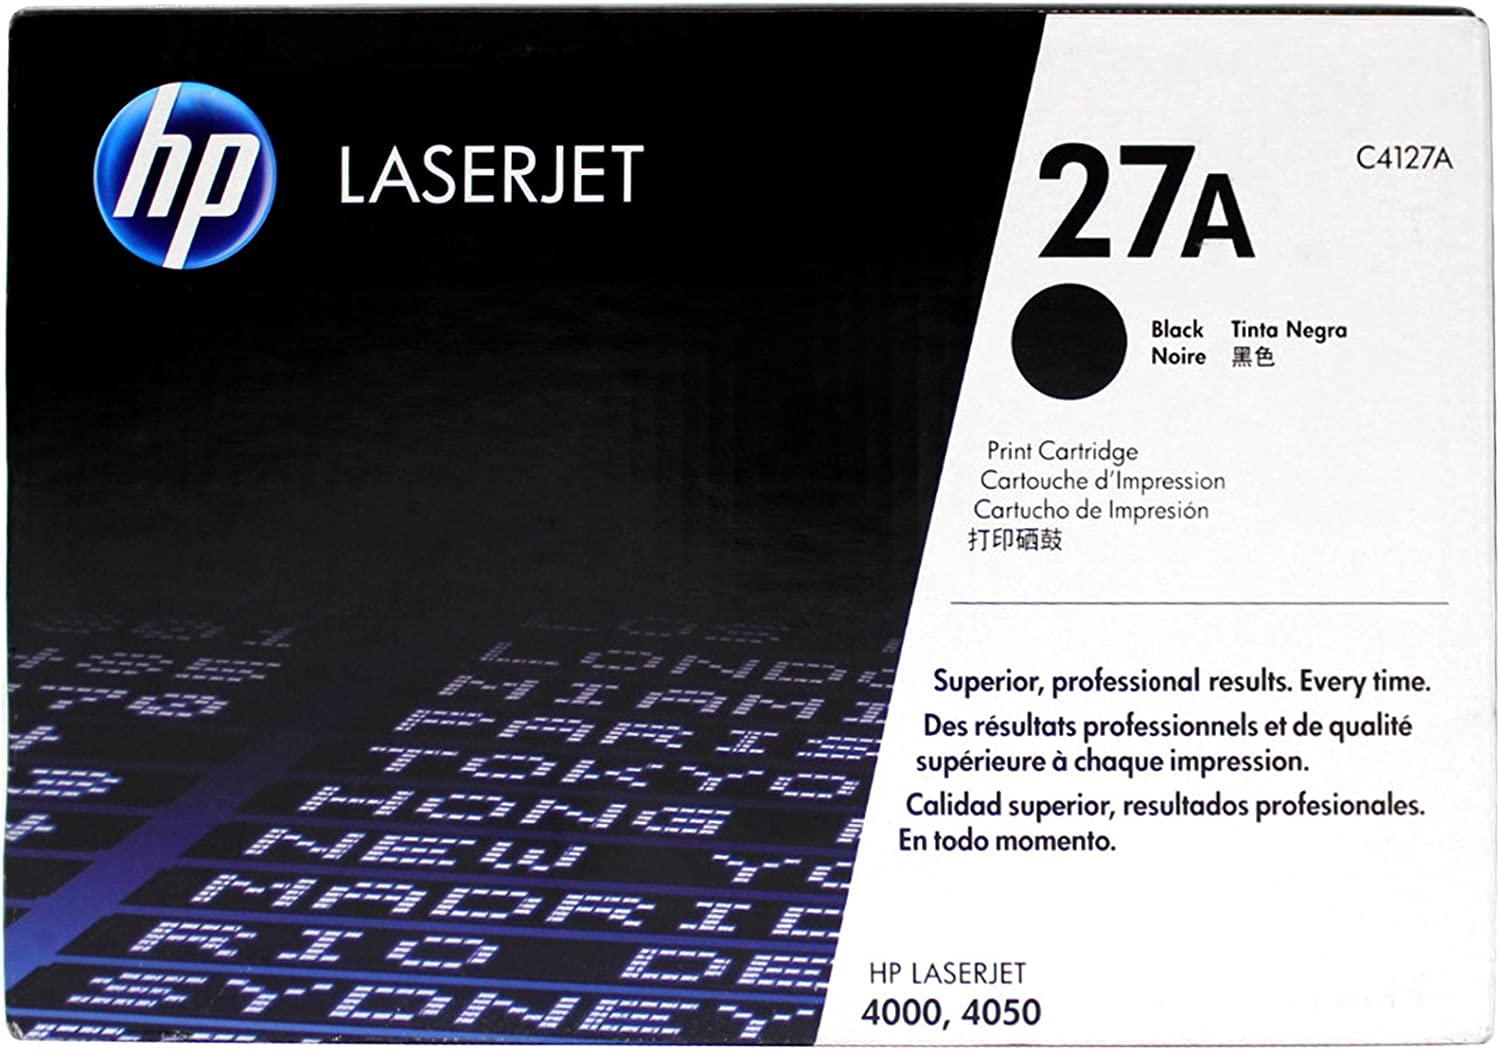 Genuine HP C4127A (27A) Toner Cartridge for Laserjet 4000, Laserjet 4050 Series